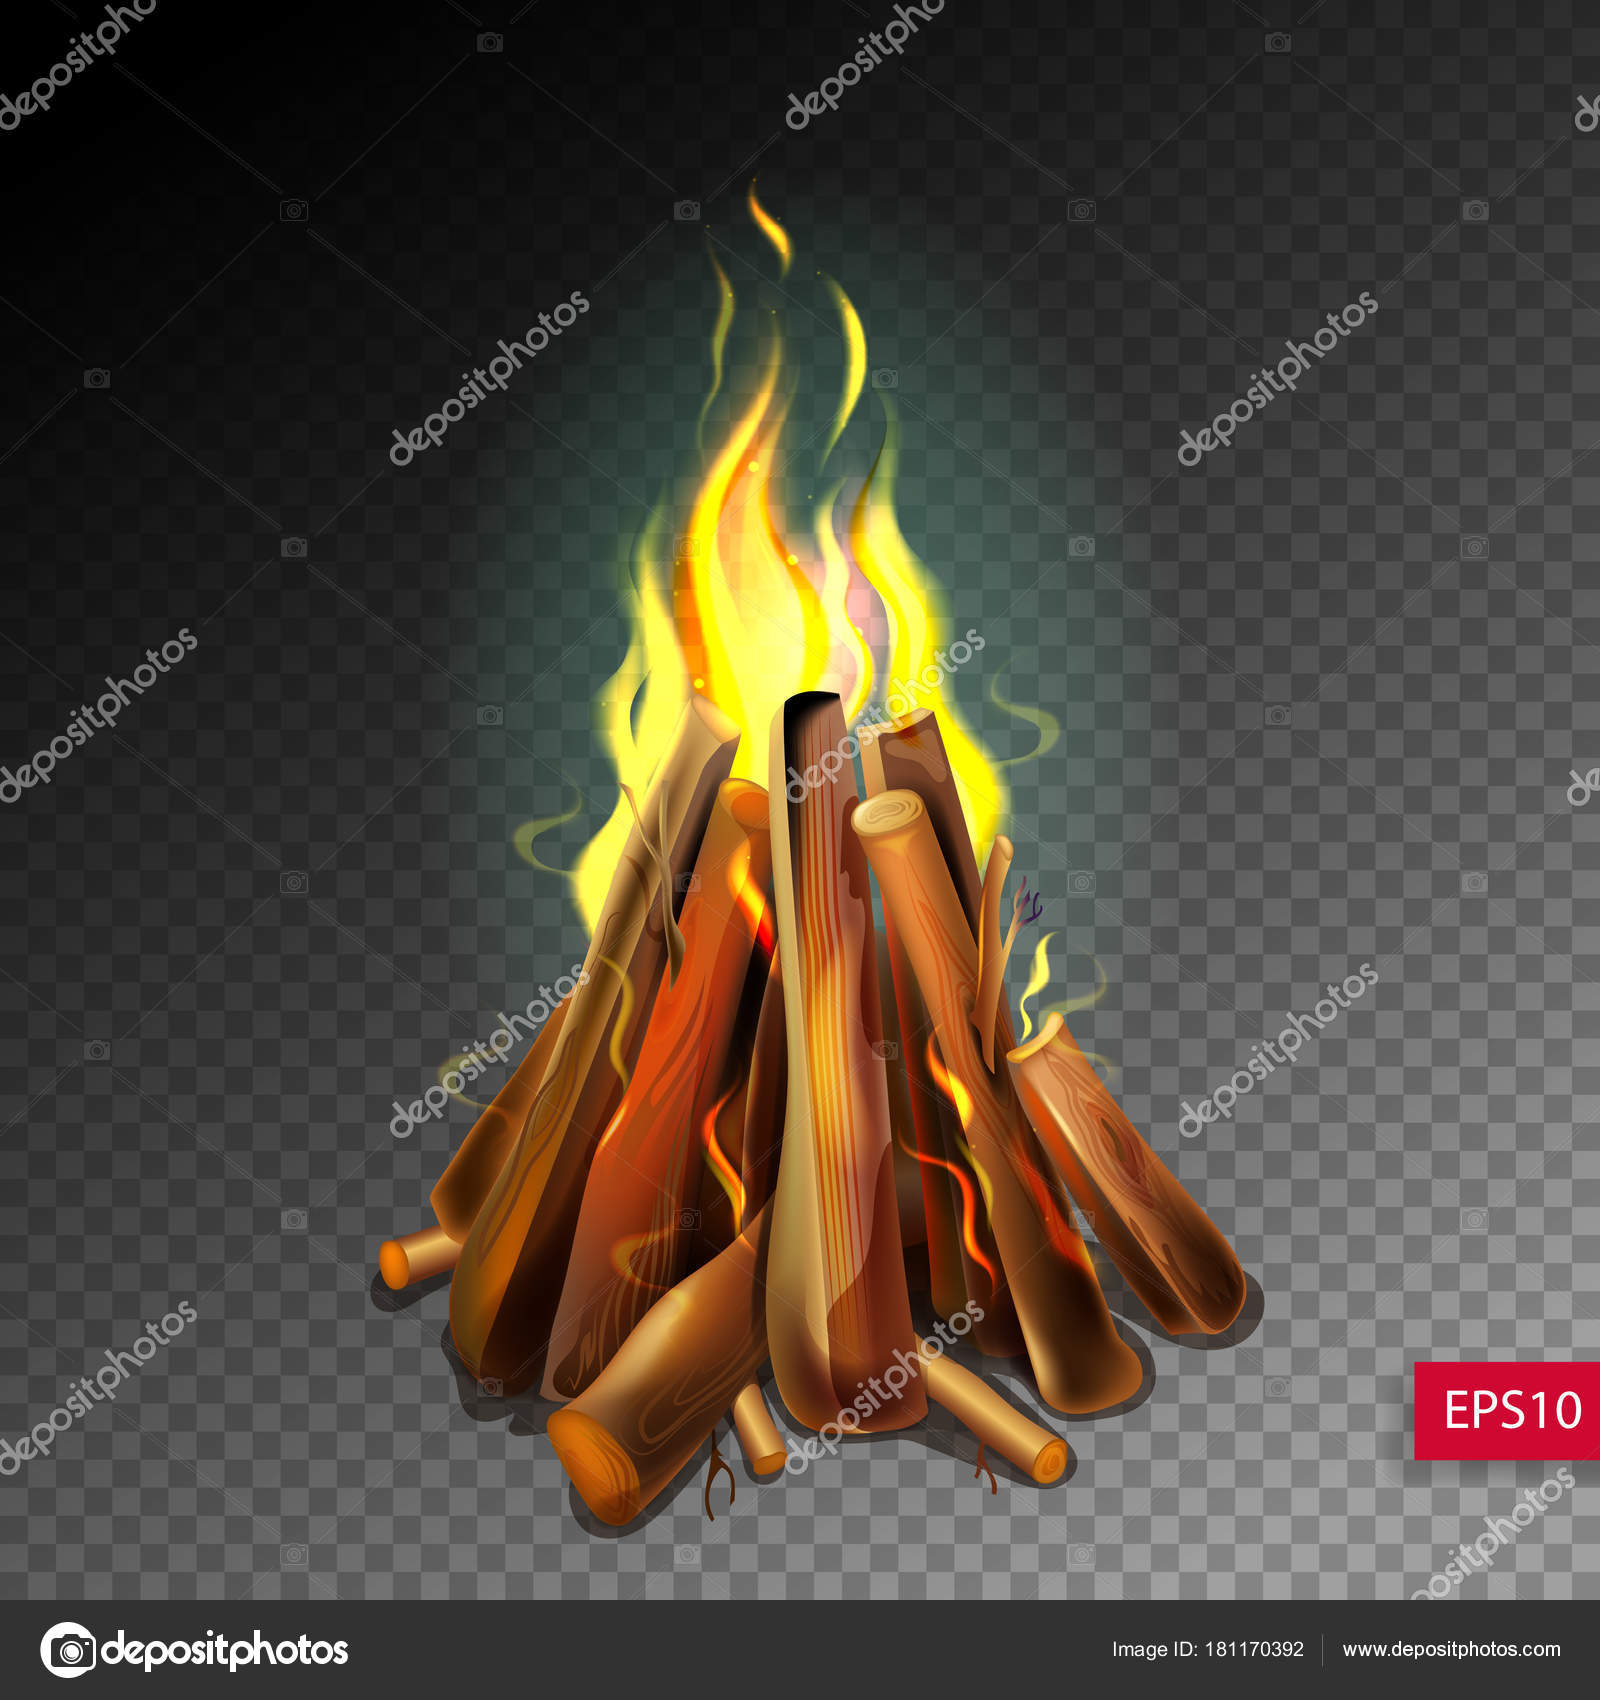 depositphotos 181170392 stock illustration realistic burning bonfire with wood Top Result 50 Inspirational Bond Fire Table Picture 2017 Iqt4